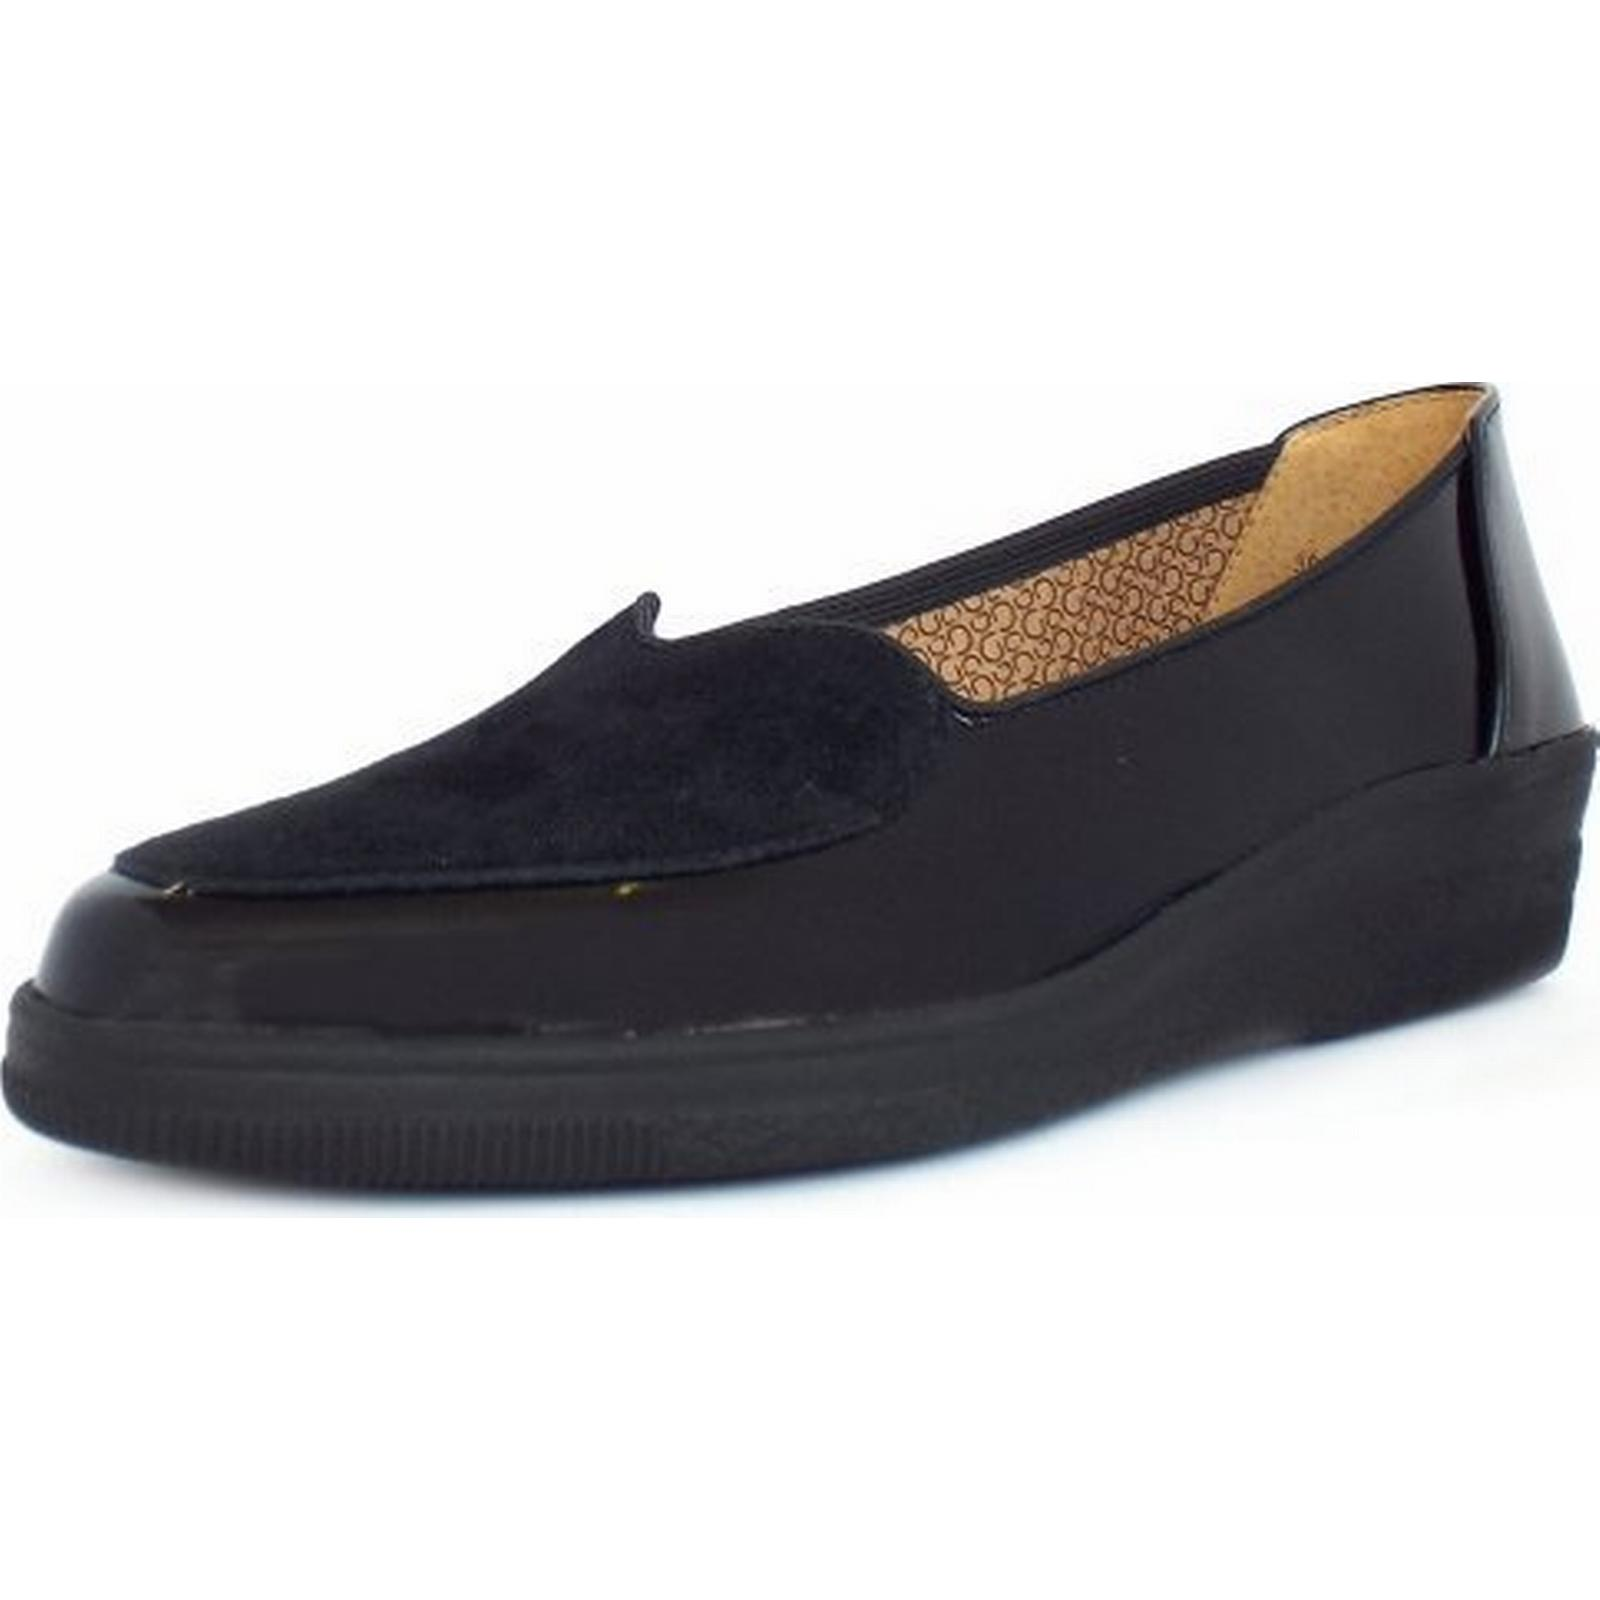 Gabor BLANCHE GABOR LADIES SHOES 36 36 SHOES 404 97 Size: 9, Colour: BLACK PATN 77989b